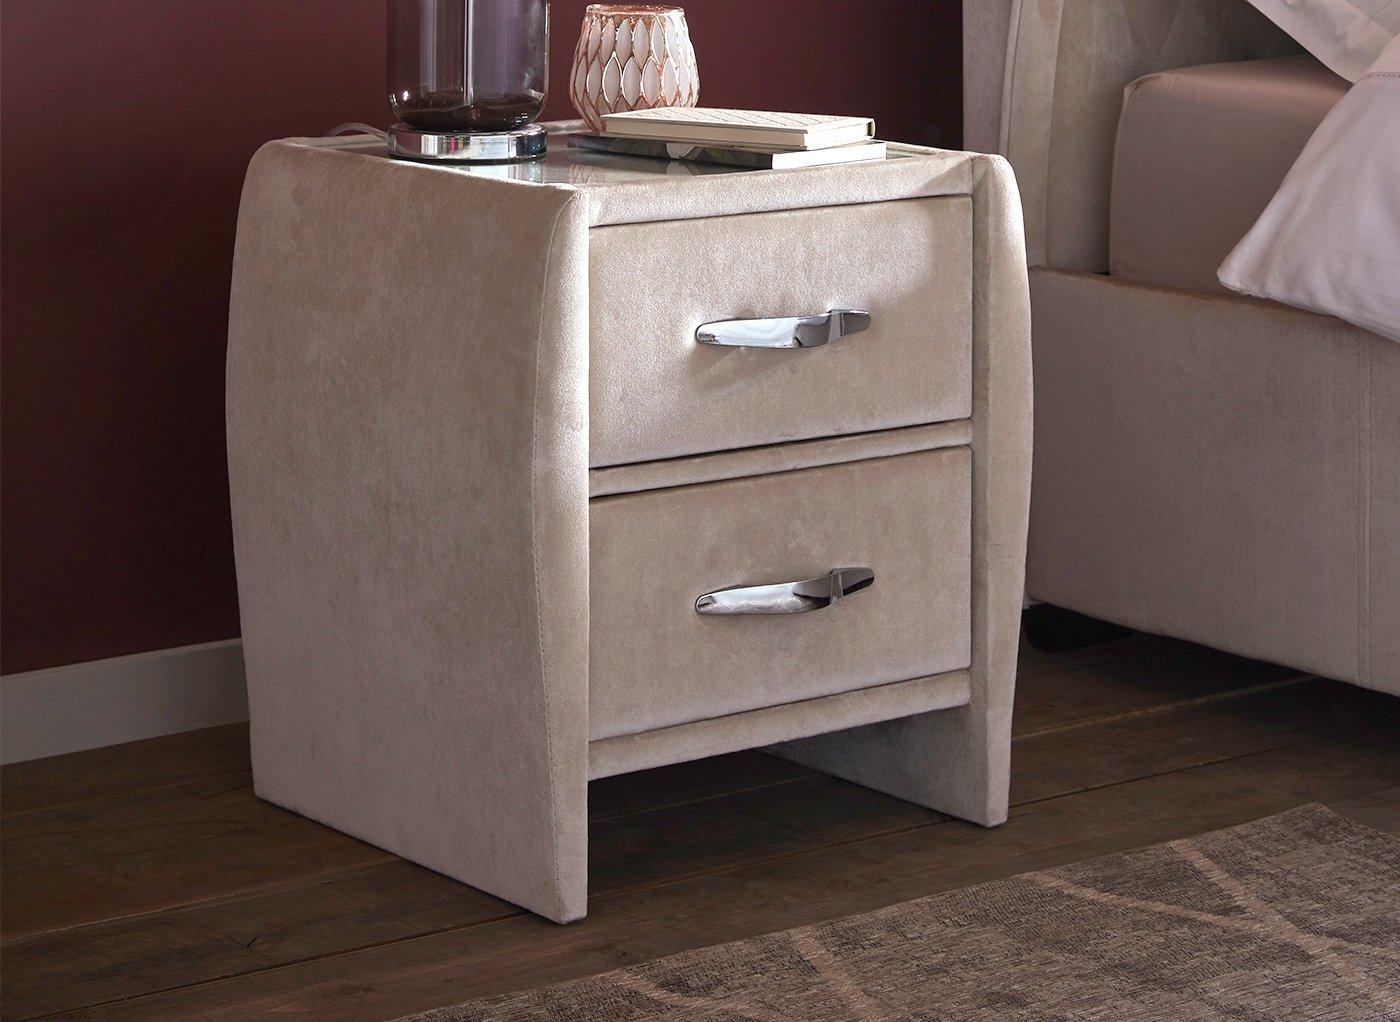 sana-2-drawer-bedside-table